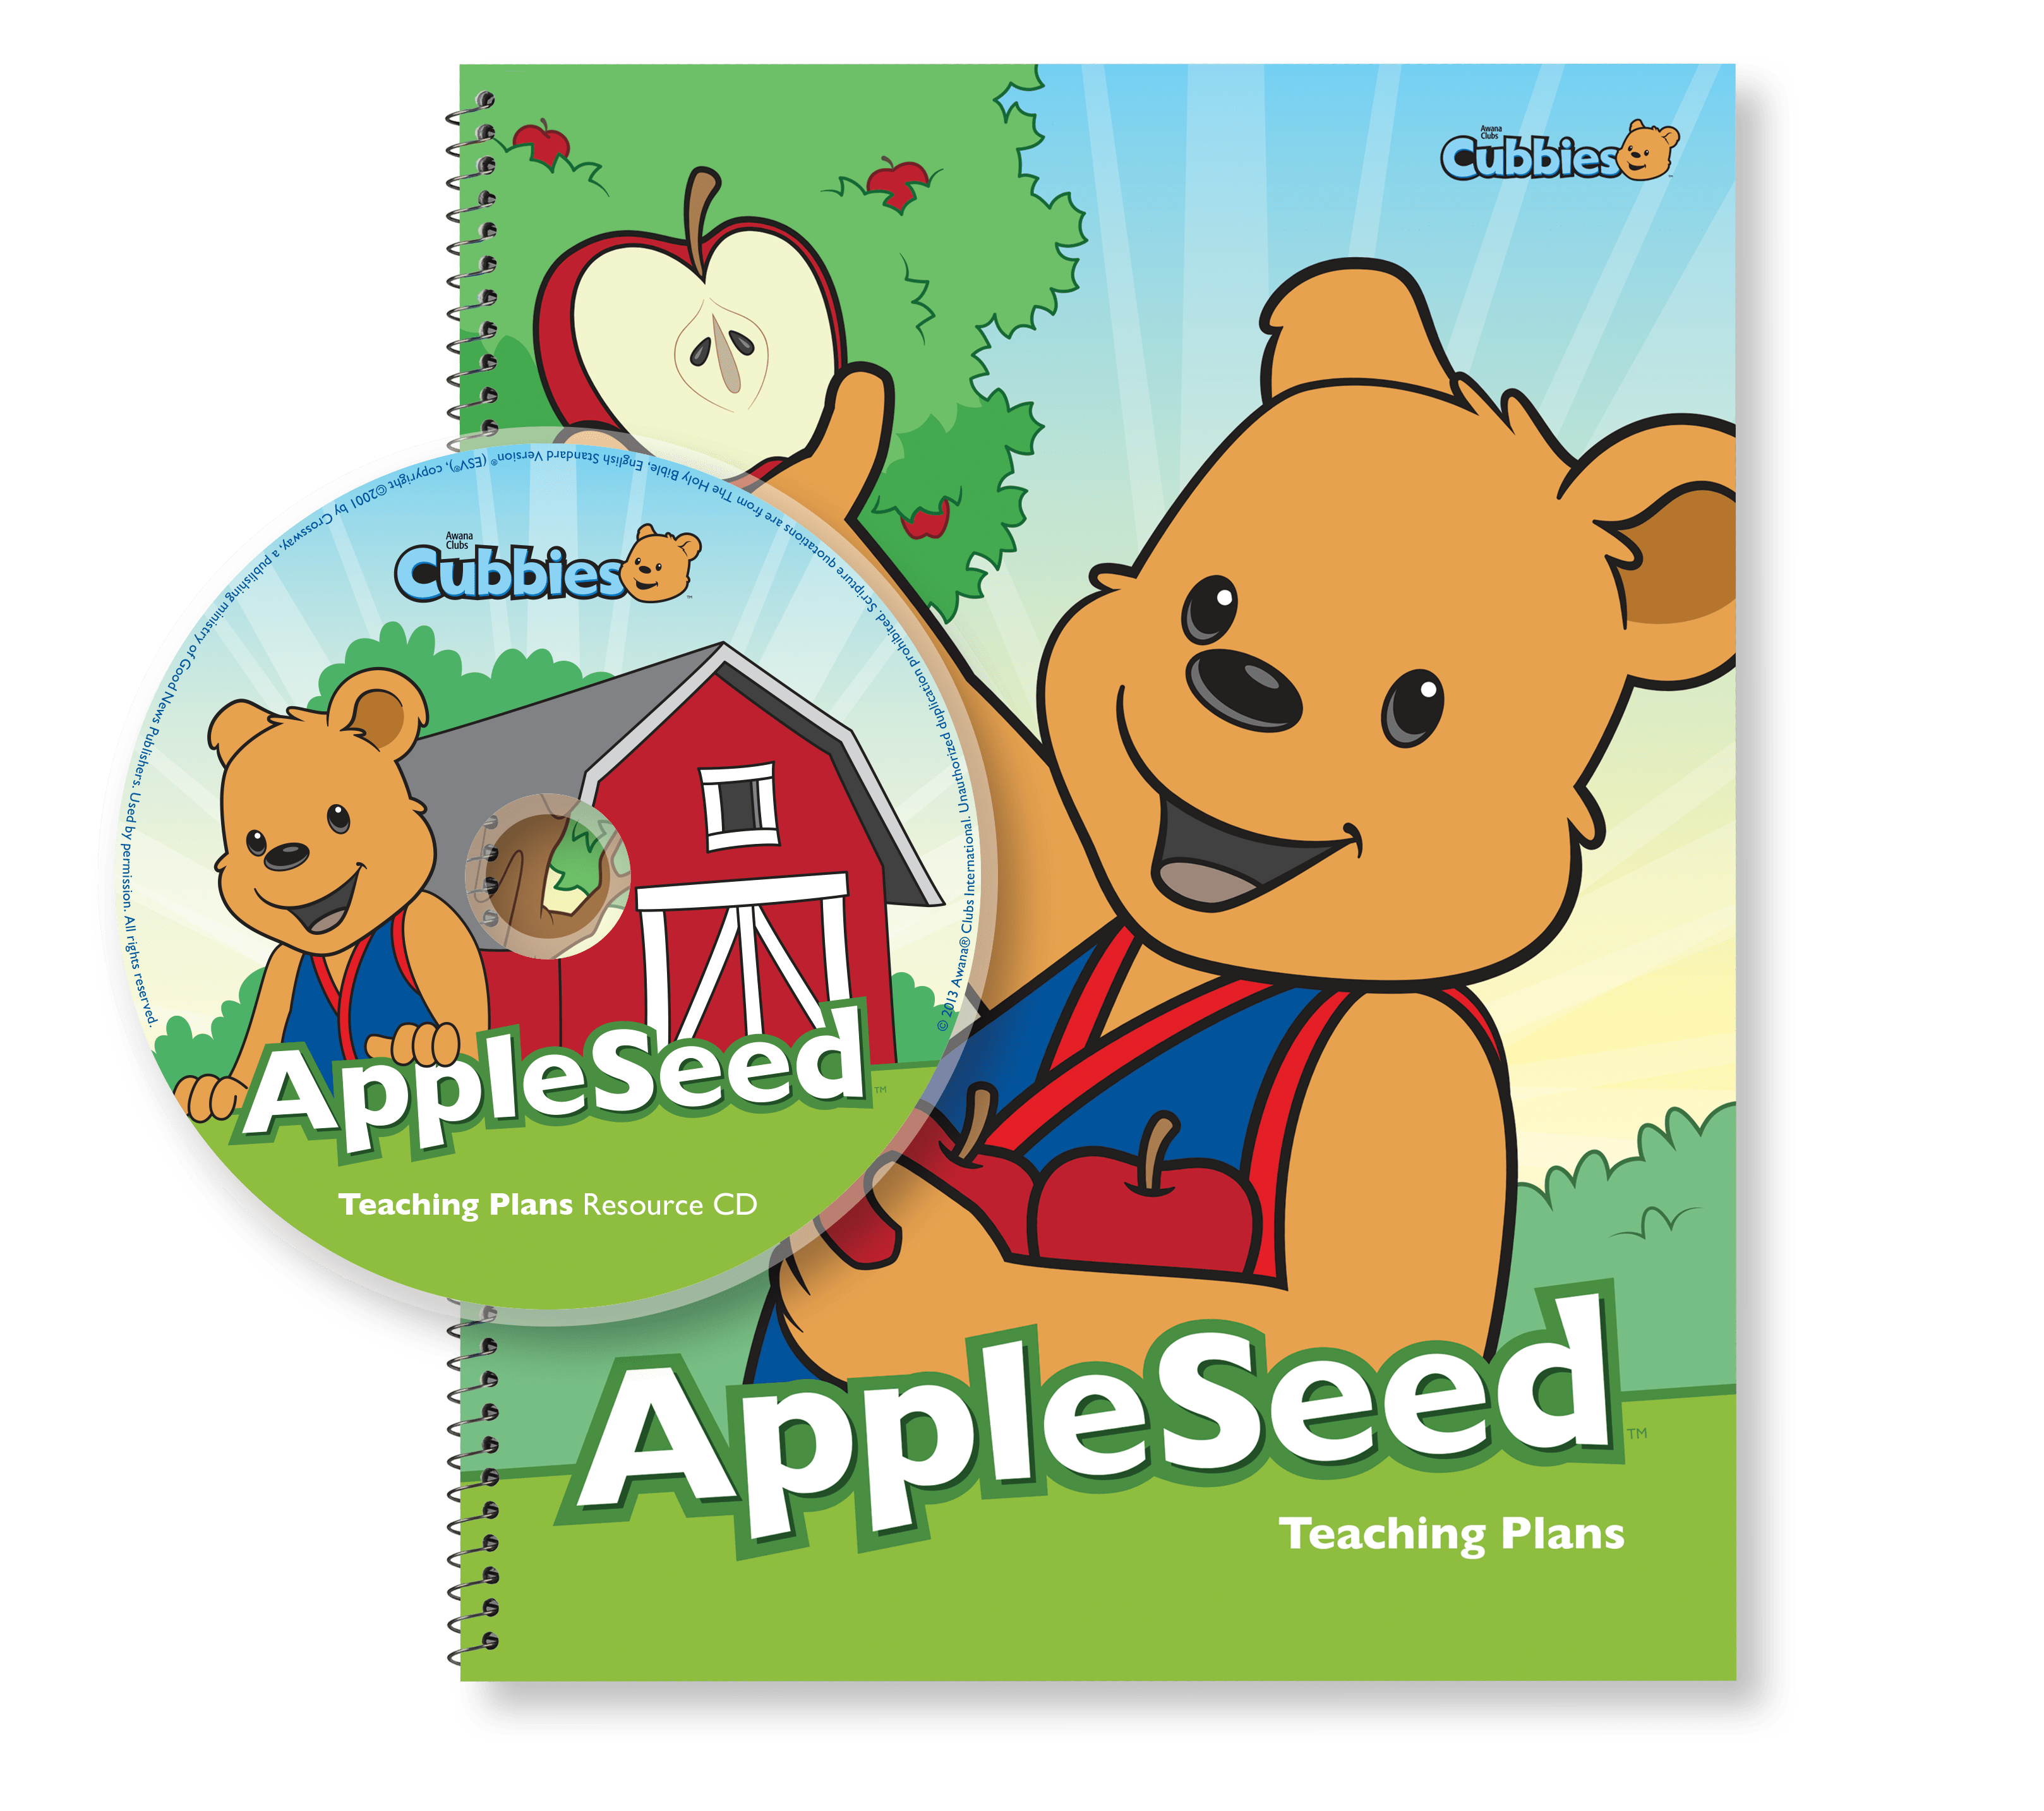 Awana Cubbies Coloring Pages - Appleseed Teaching Plans With Cd ... | 2867x3236